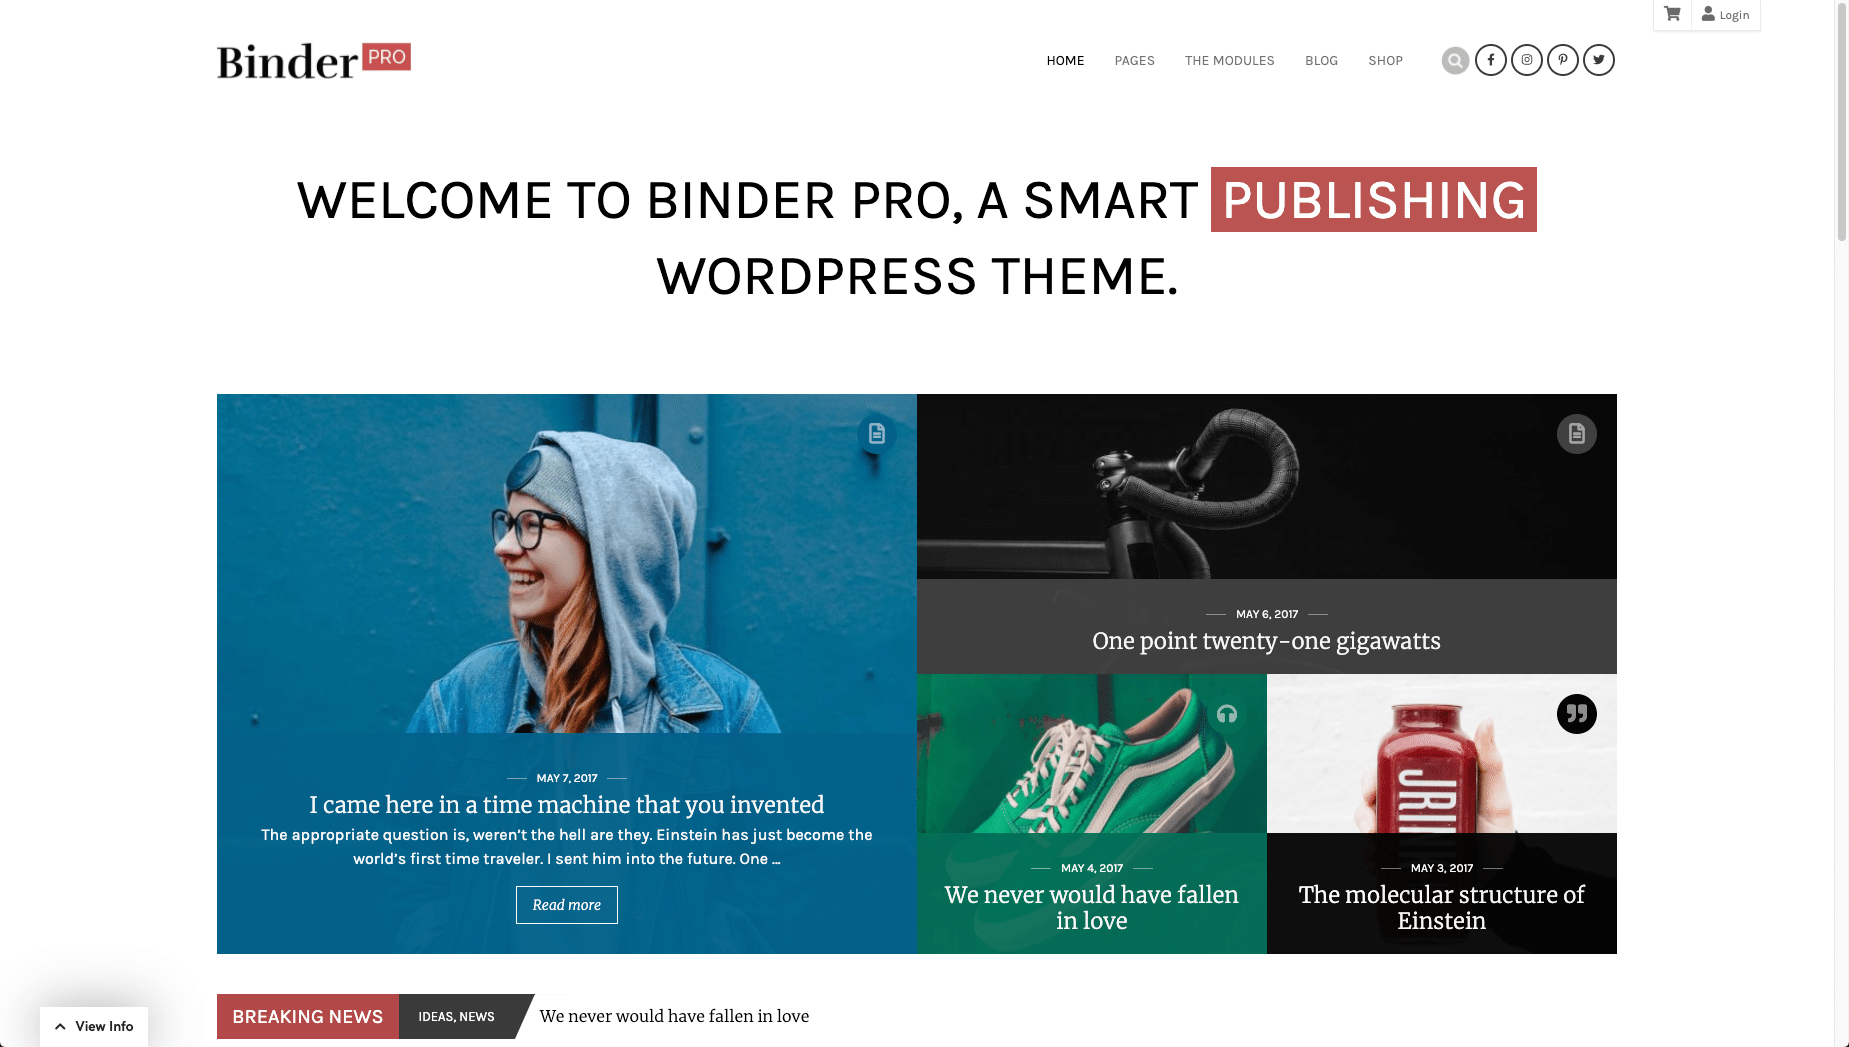 binder pro - WordPress membership theme